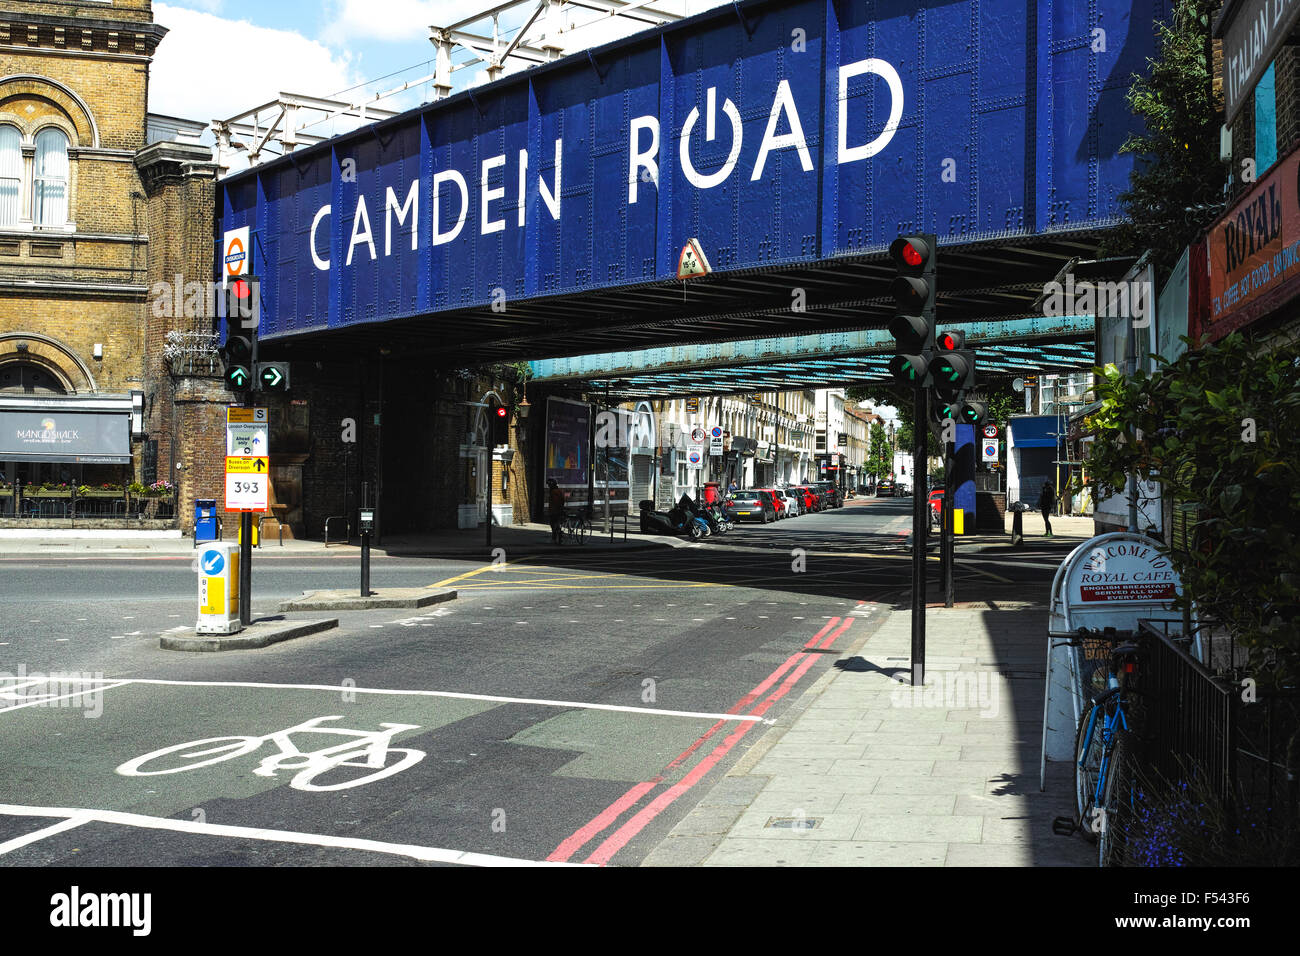 Camden Road showing the London Overground railway bridge repainted with location - Stock Image